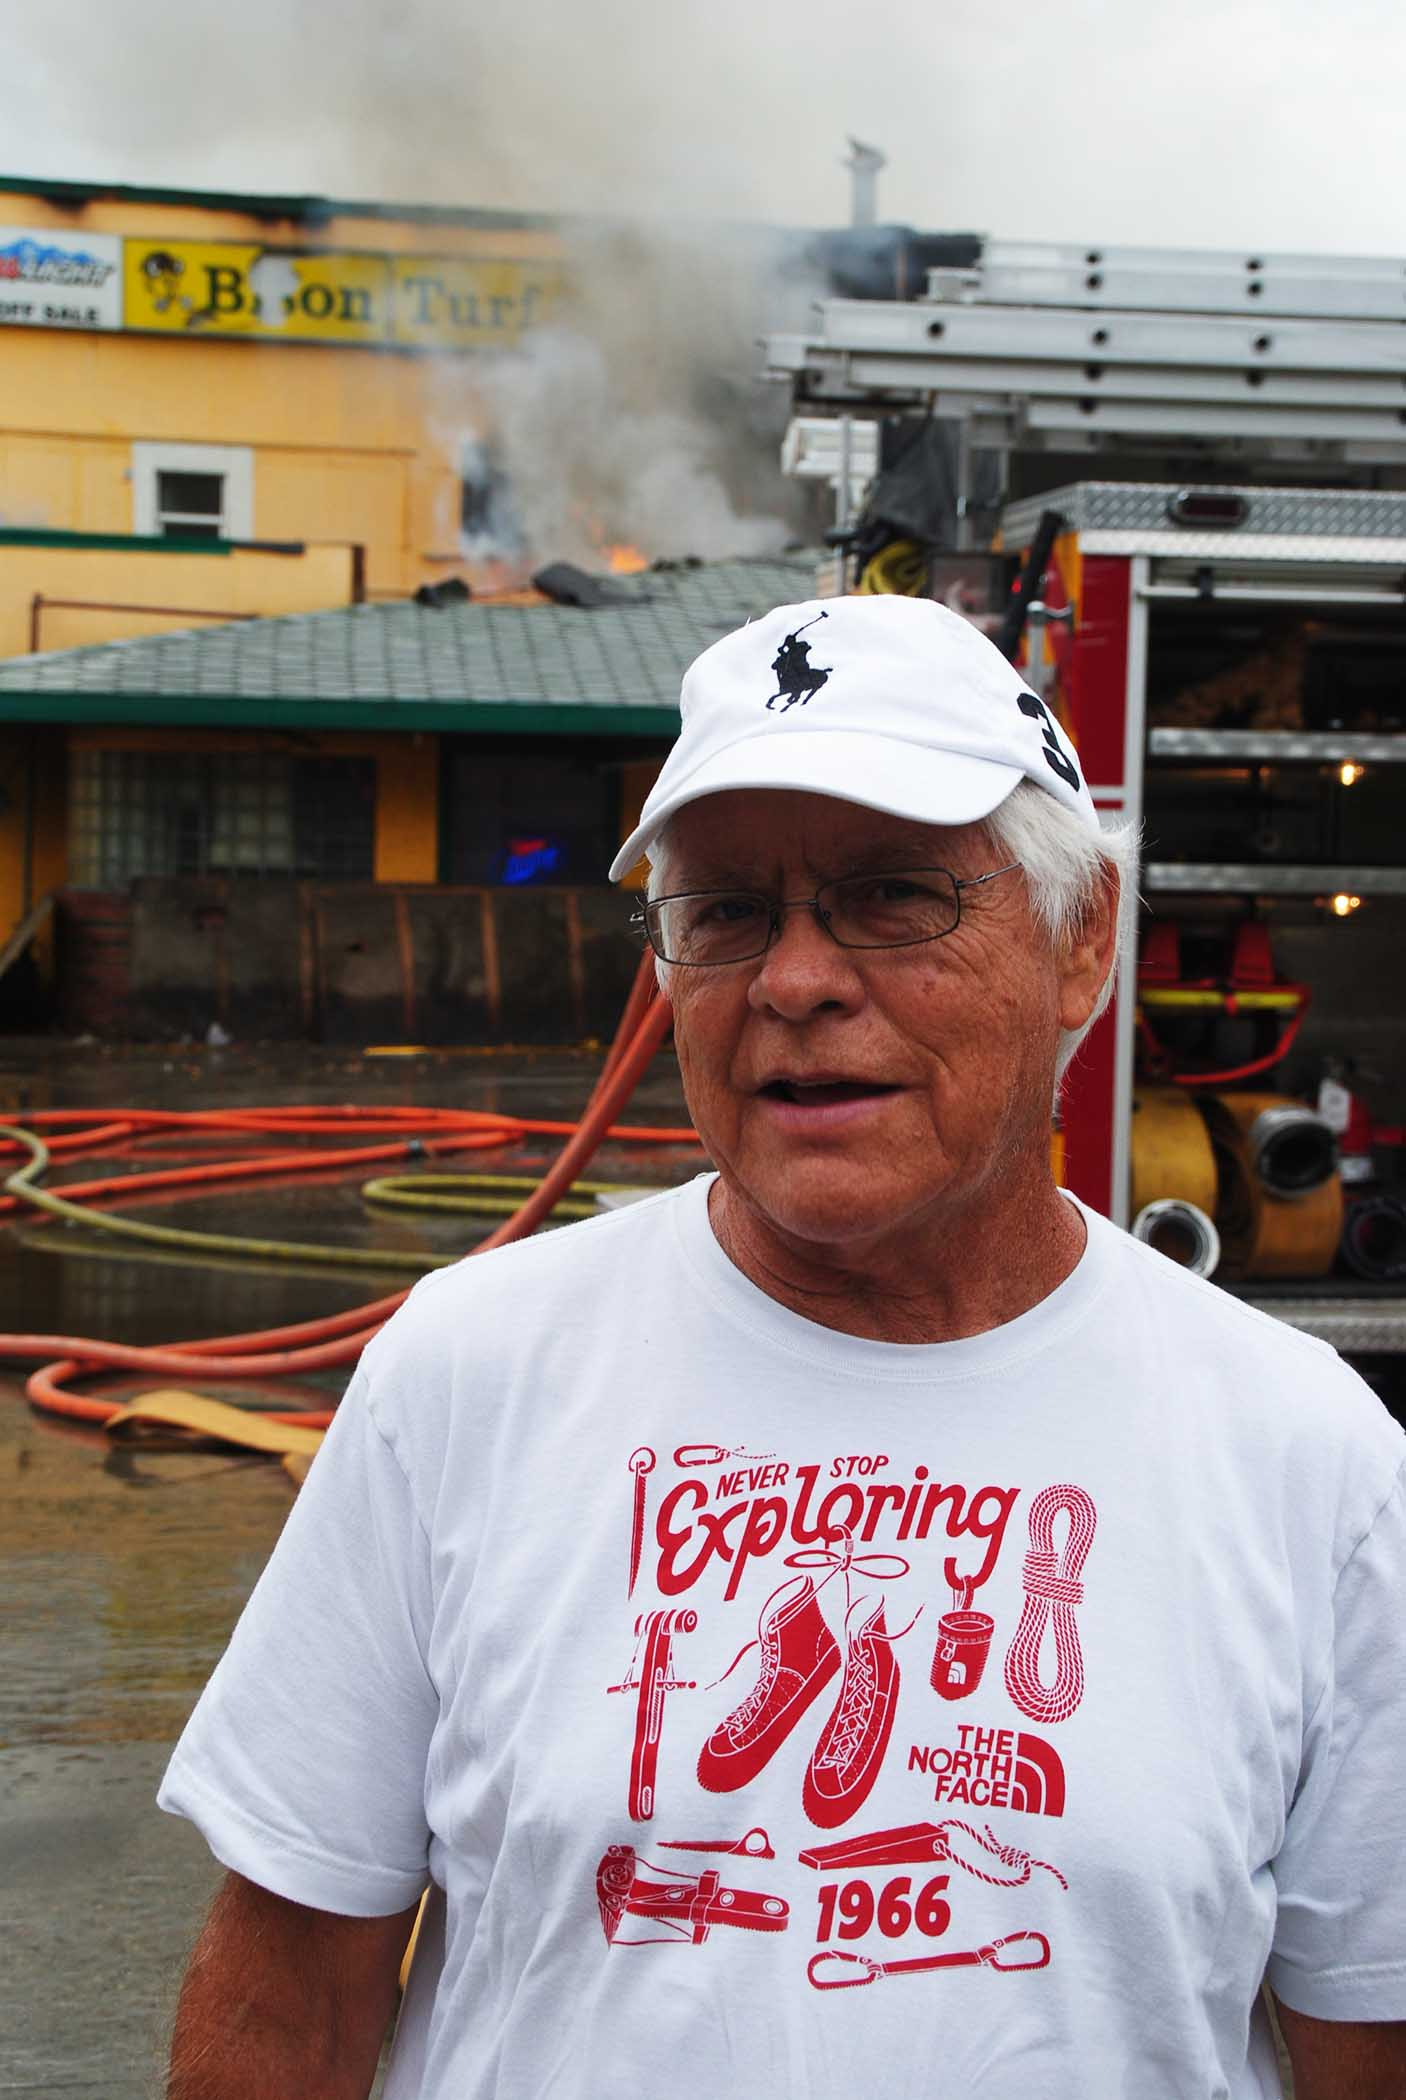 James Sabo before his burning restaurant in July 2016 - photo by C.S. Hagen